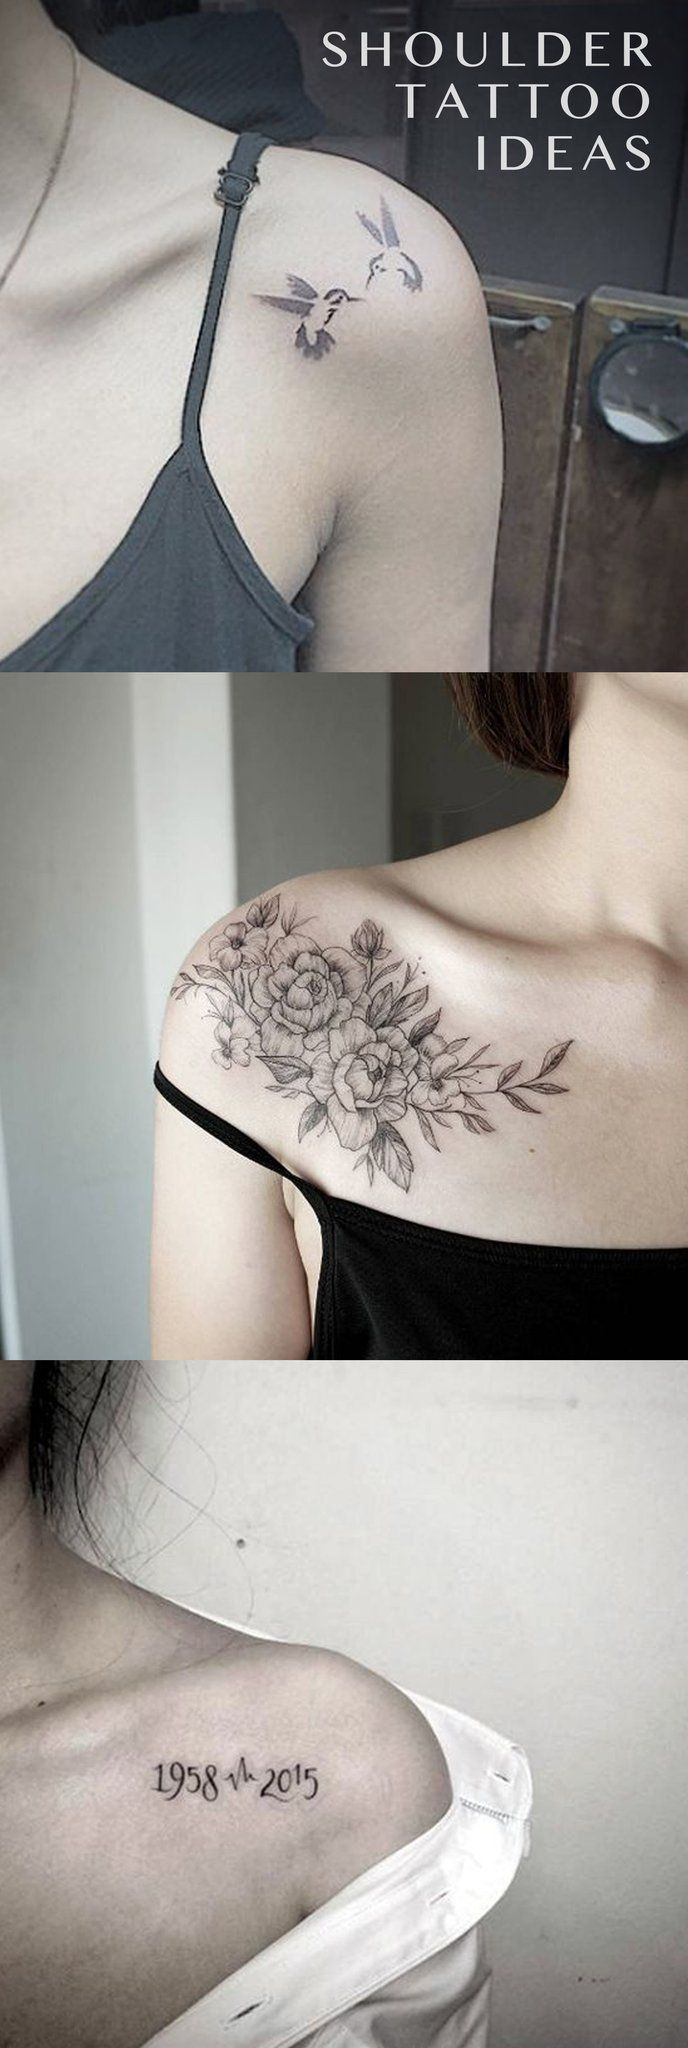 263 best tattoo images on pinterest tattoo ideas tattoo for Small shoulder tattoo